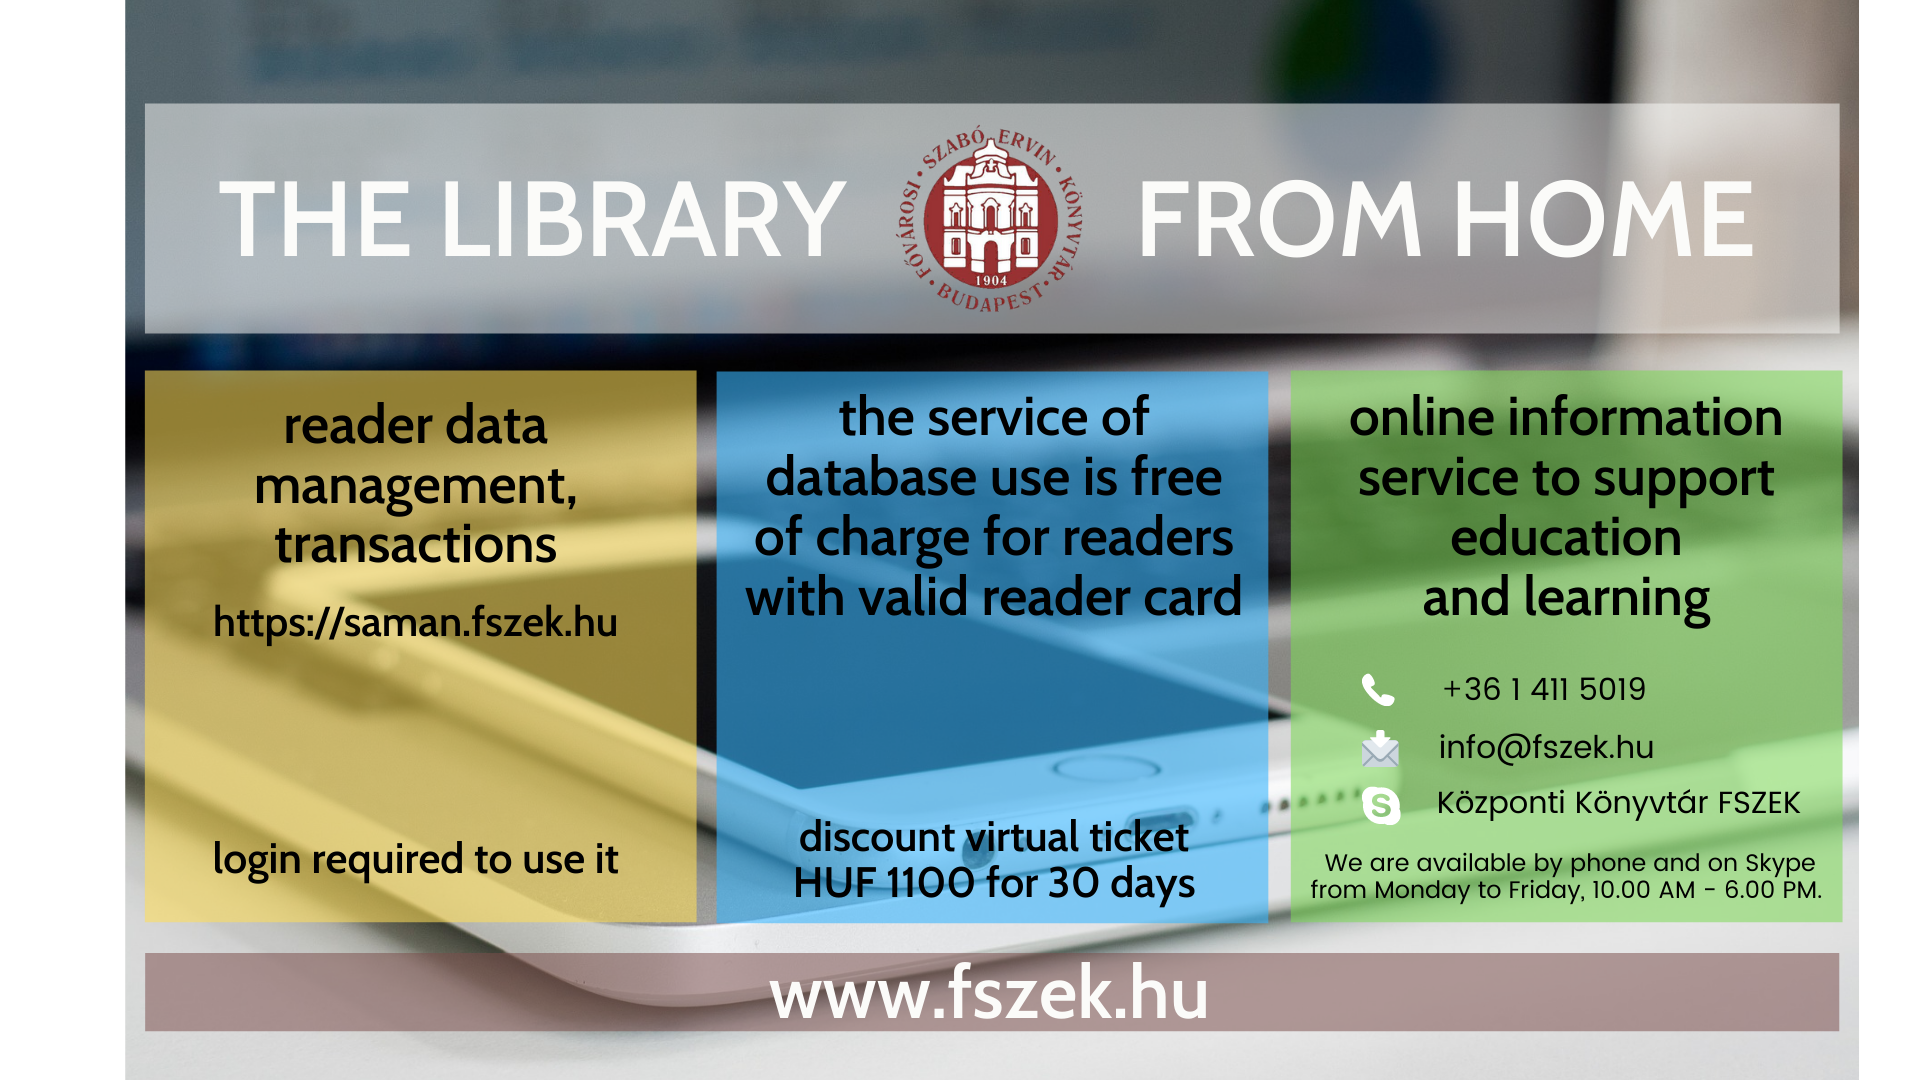 The Library from home service has been expanded